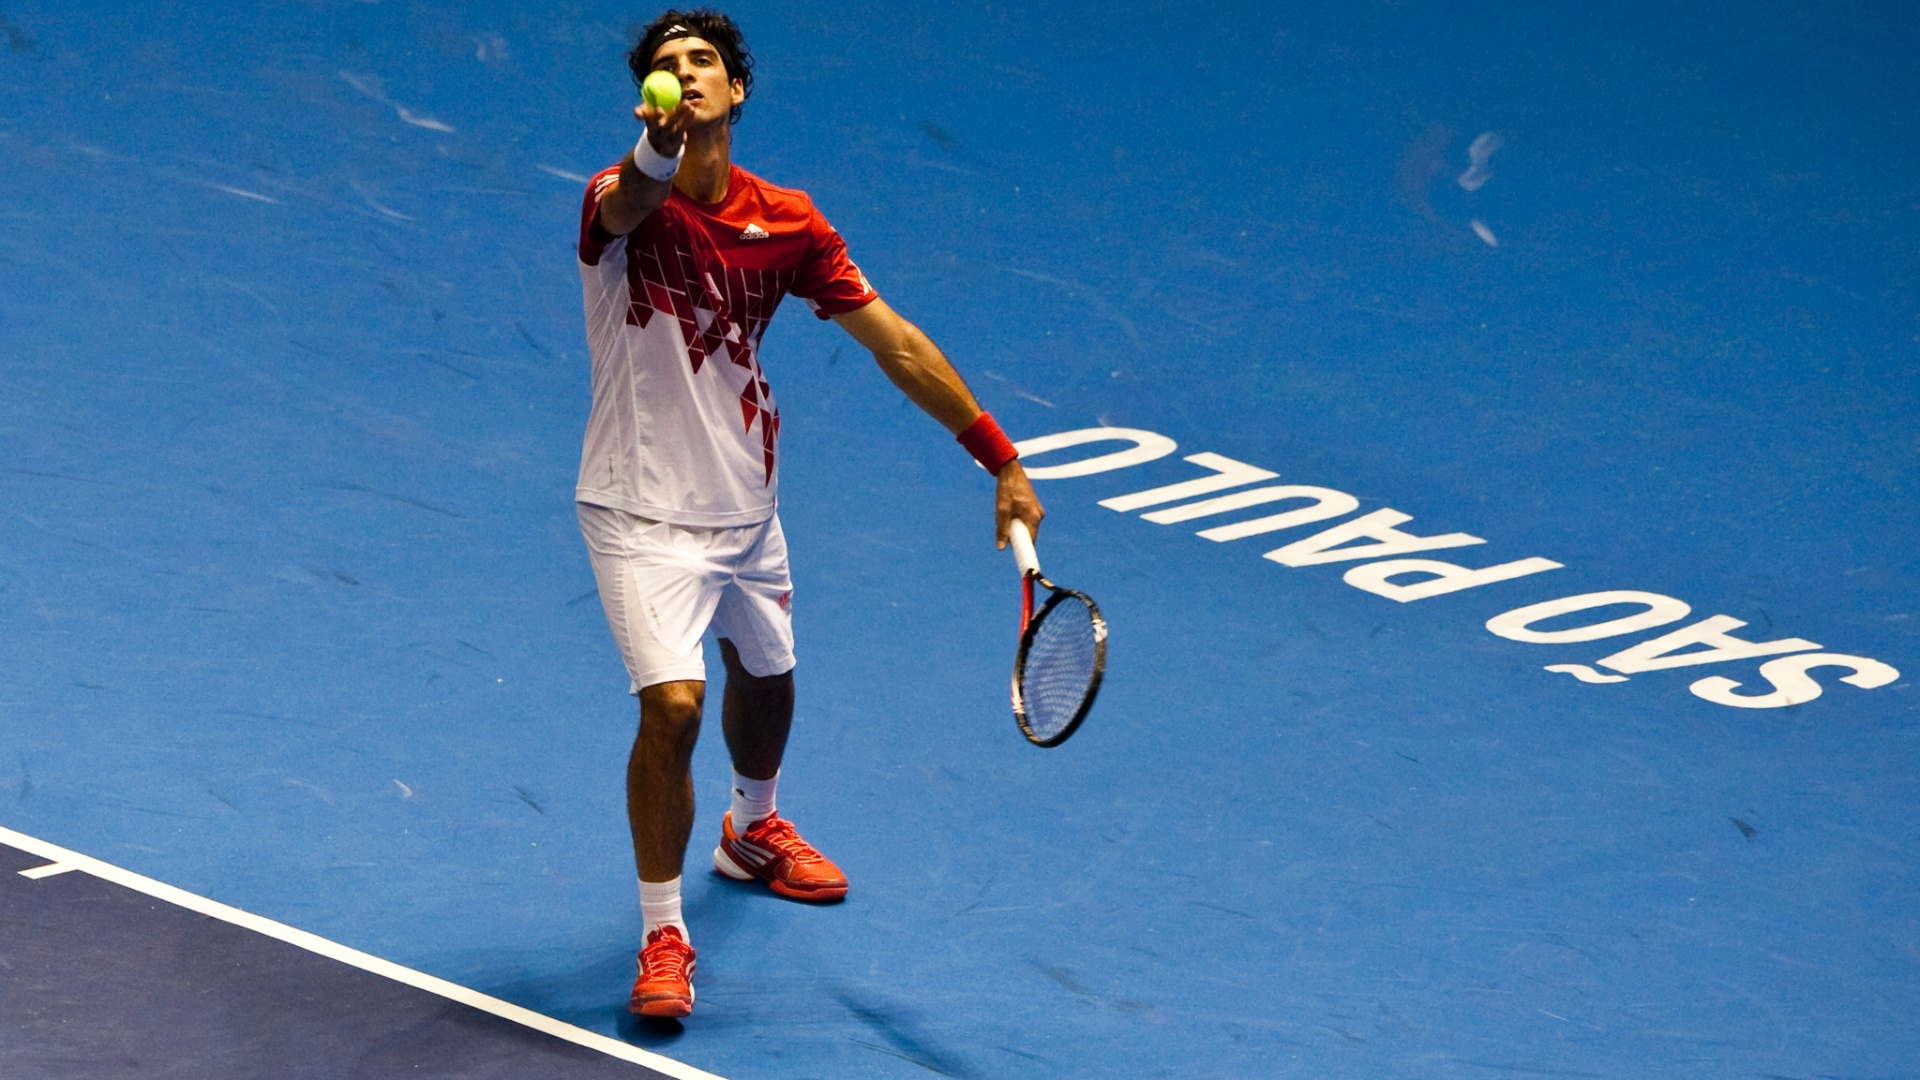 Thomaz Bellucci estreia no ATP Challenger Finals em So Paulo (16/11/2011)